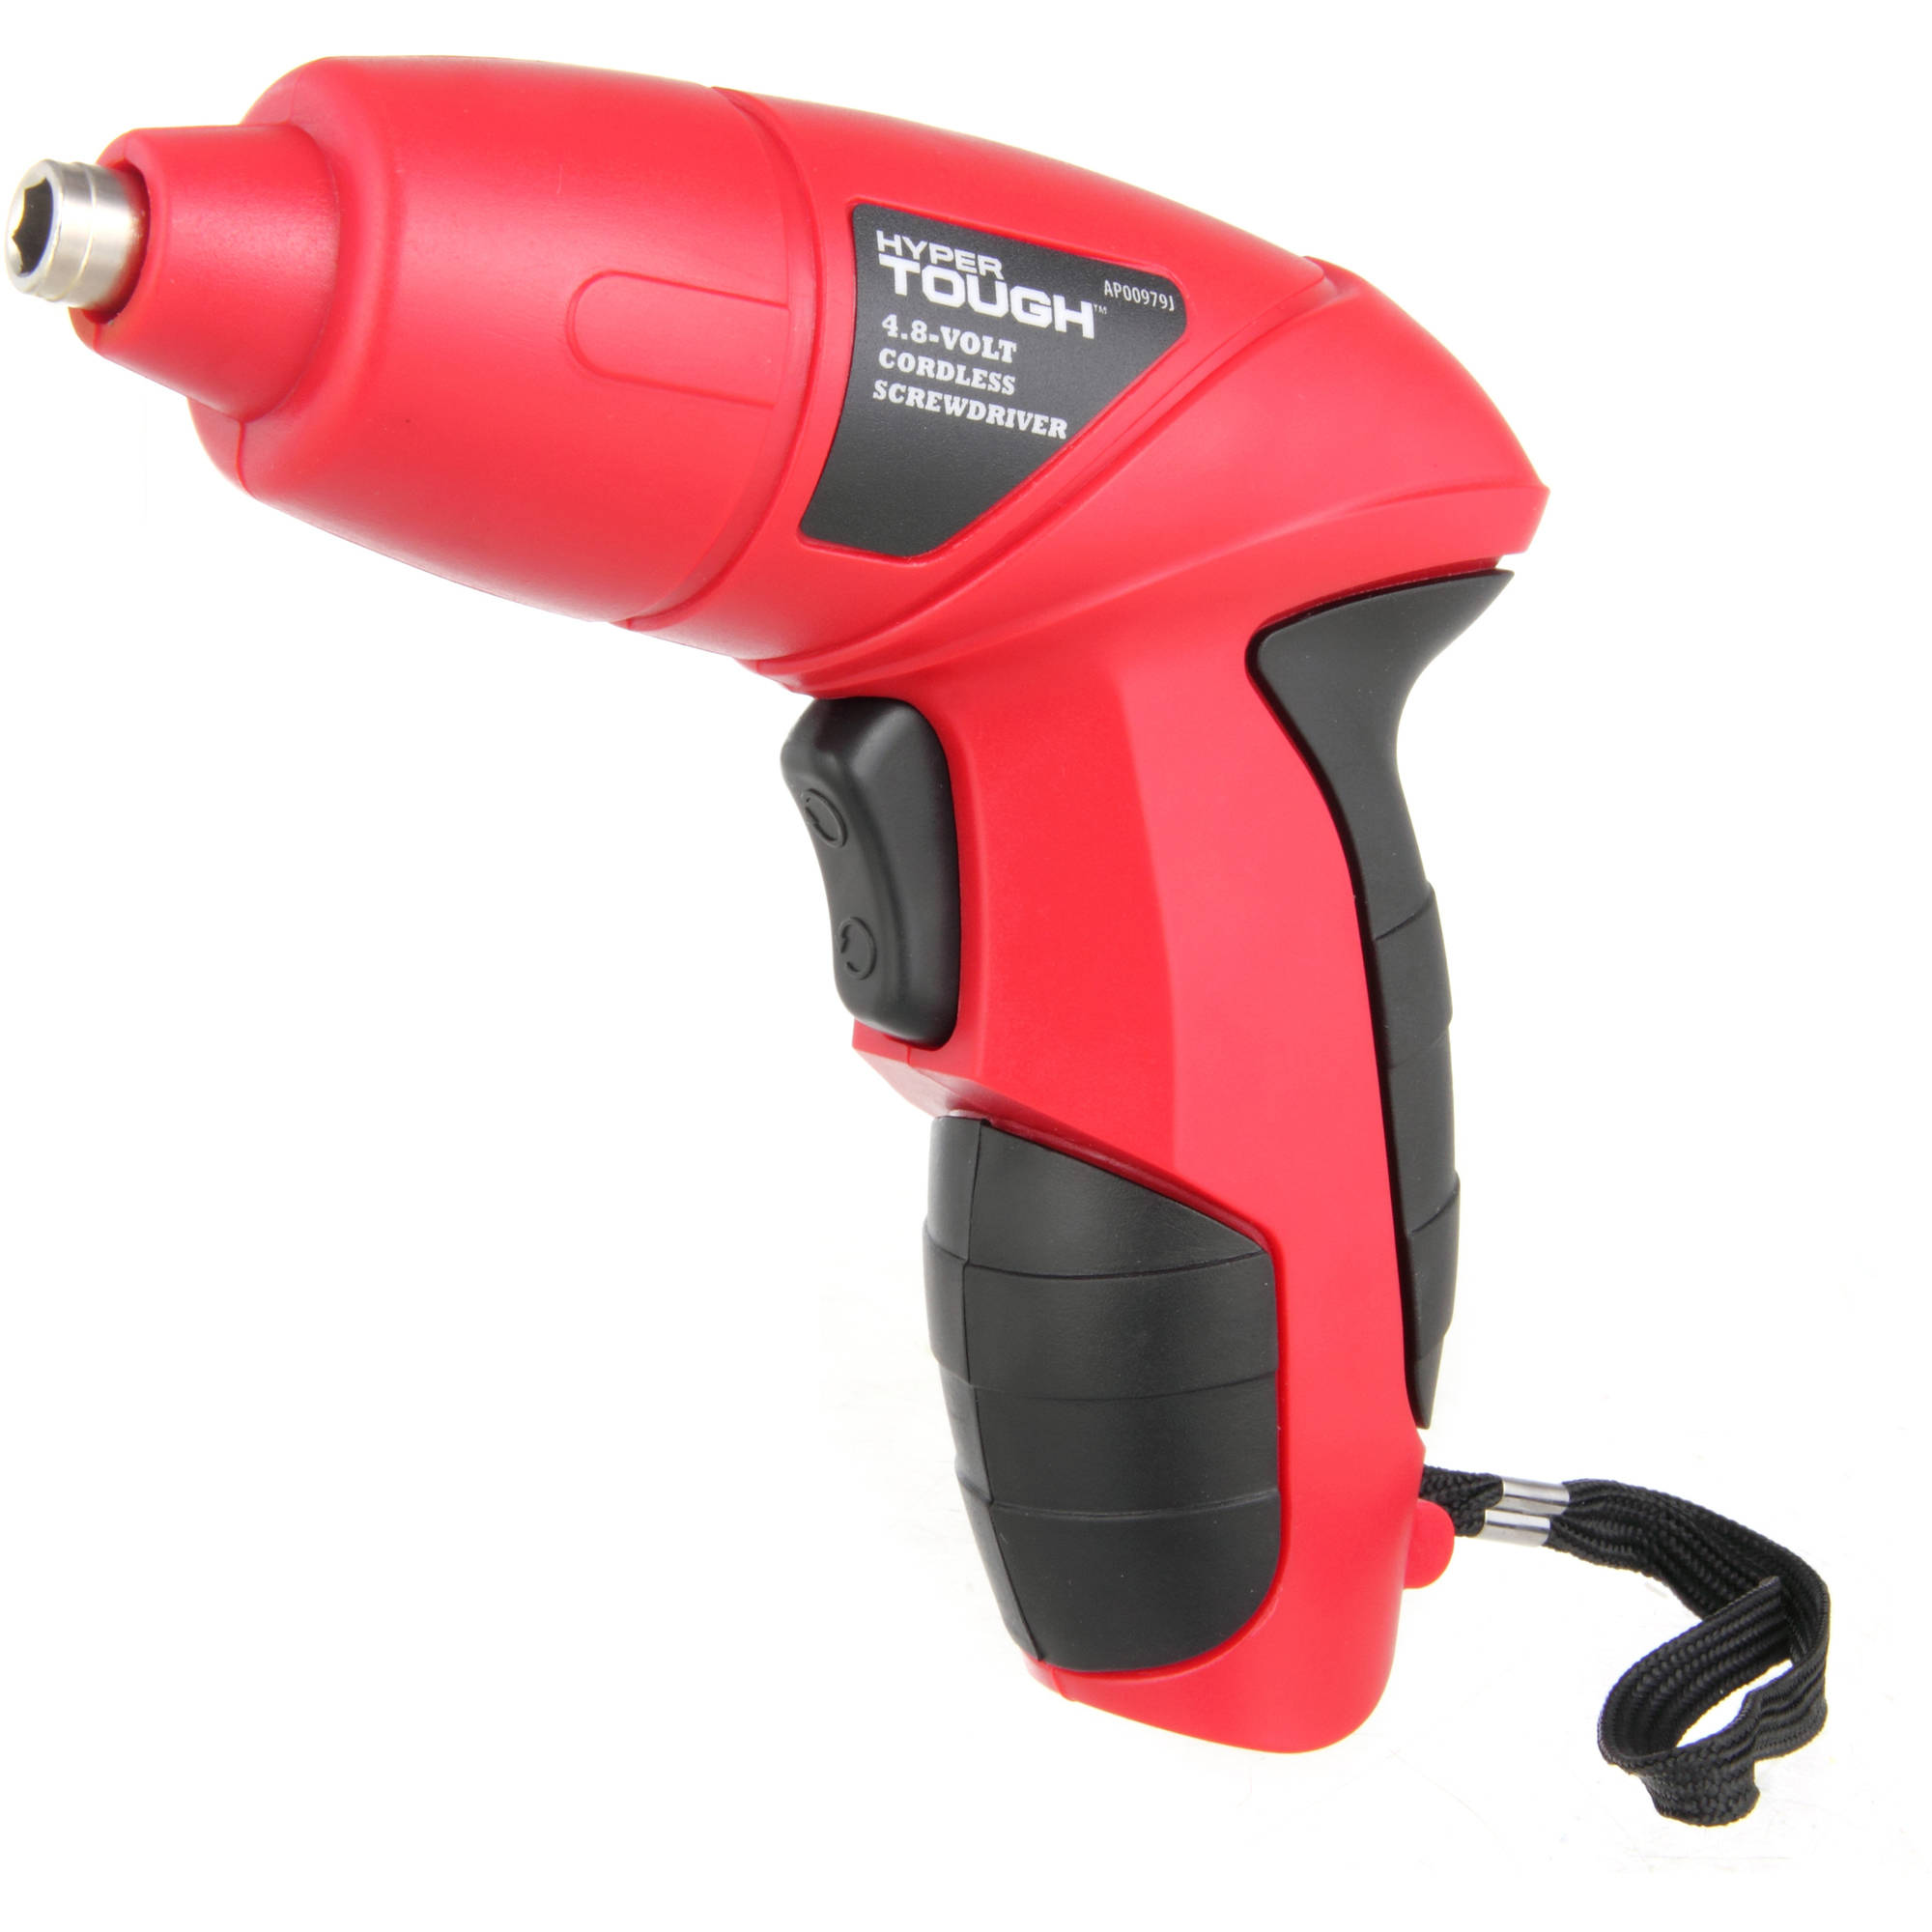 Hyper Tough AP00979J 4.8 Volt Cordless Screwdriver With Charger